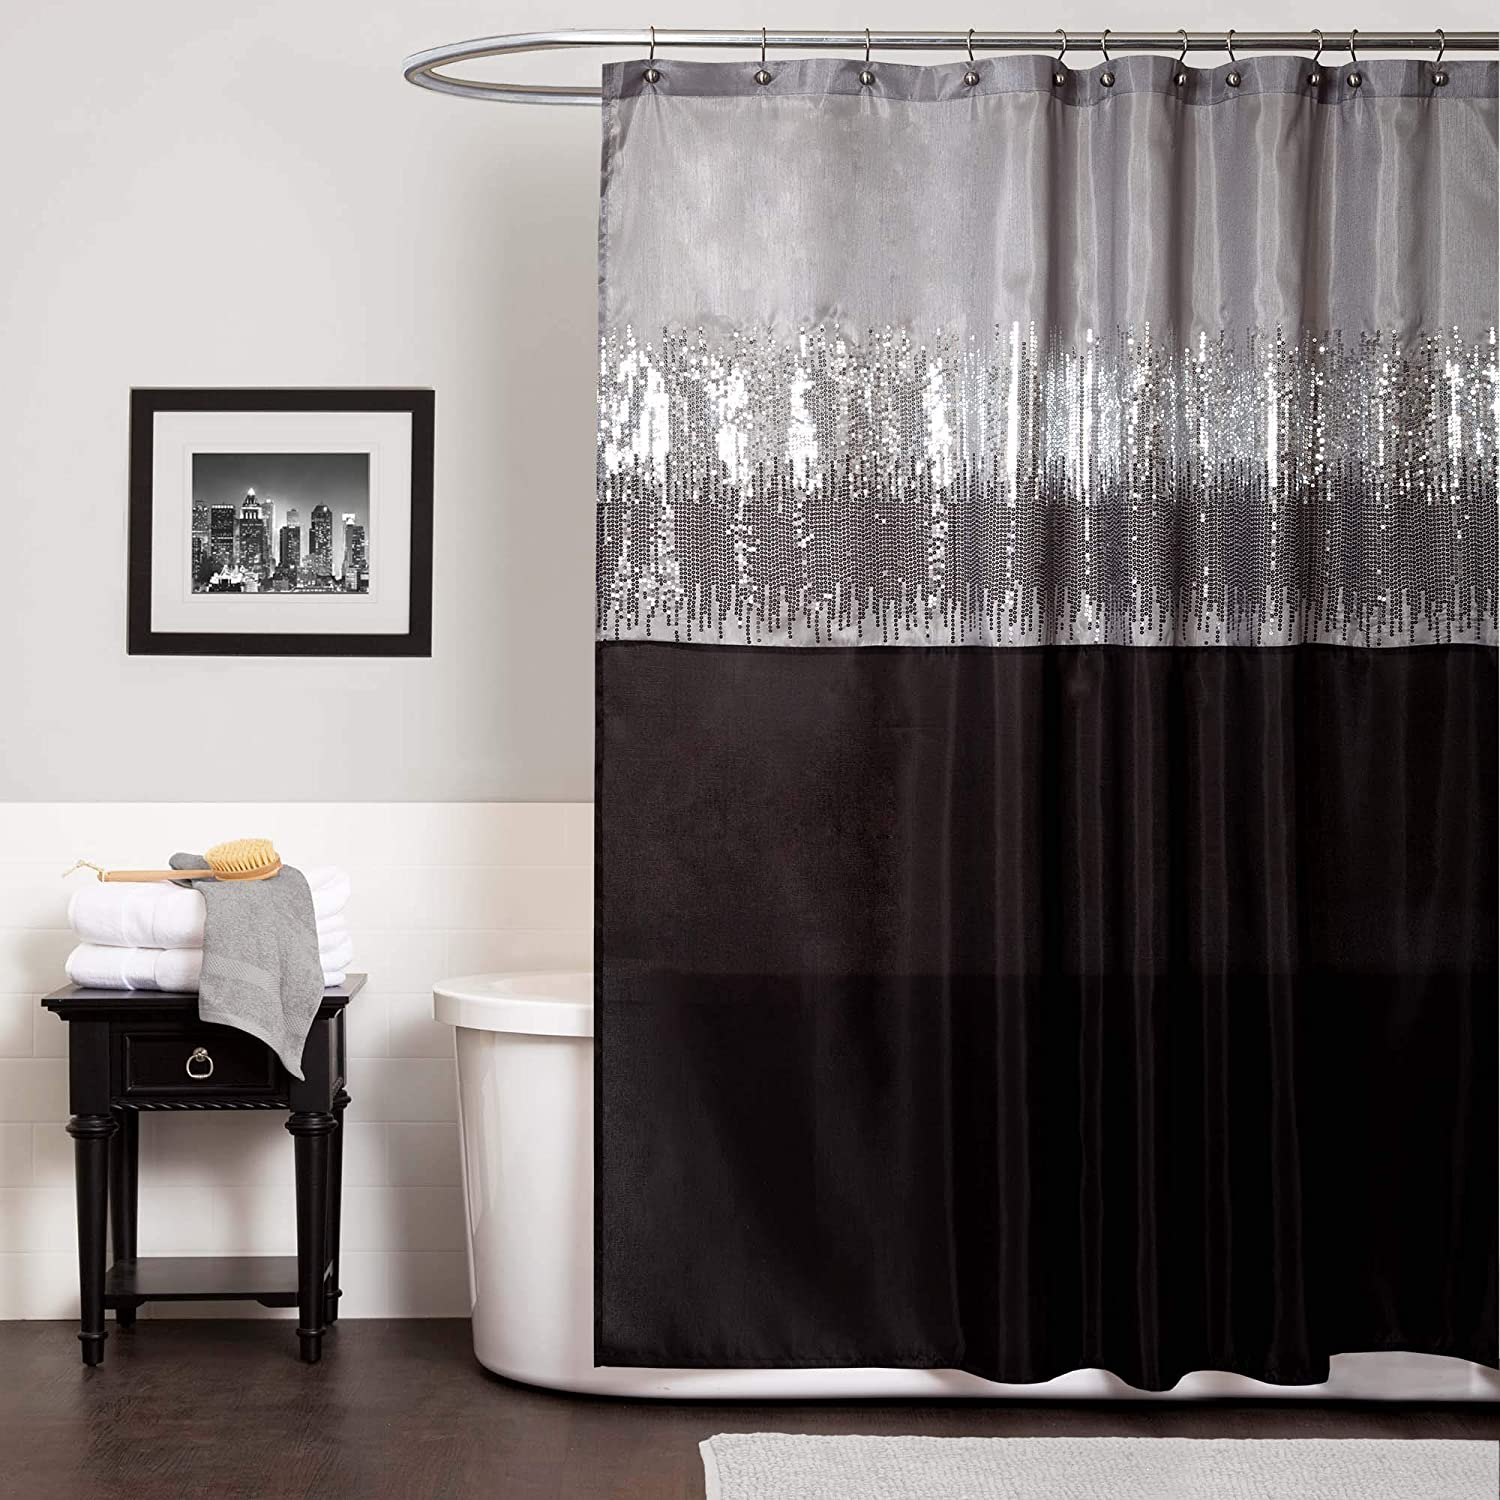 """Black and White x 72/"""" Sequin Fabric Shimmery Color Block Design for Bathroom Lush Decor Night Sky Shower Curtain"""